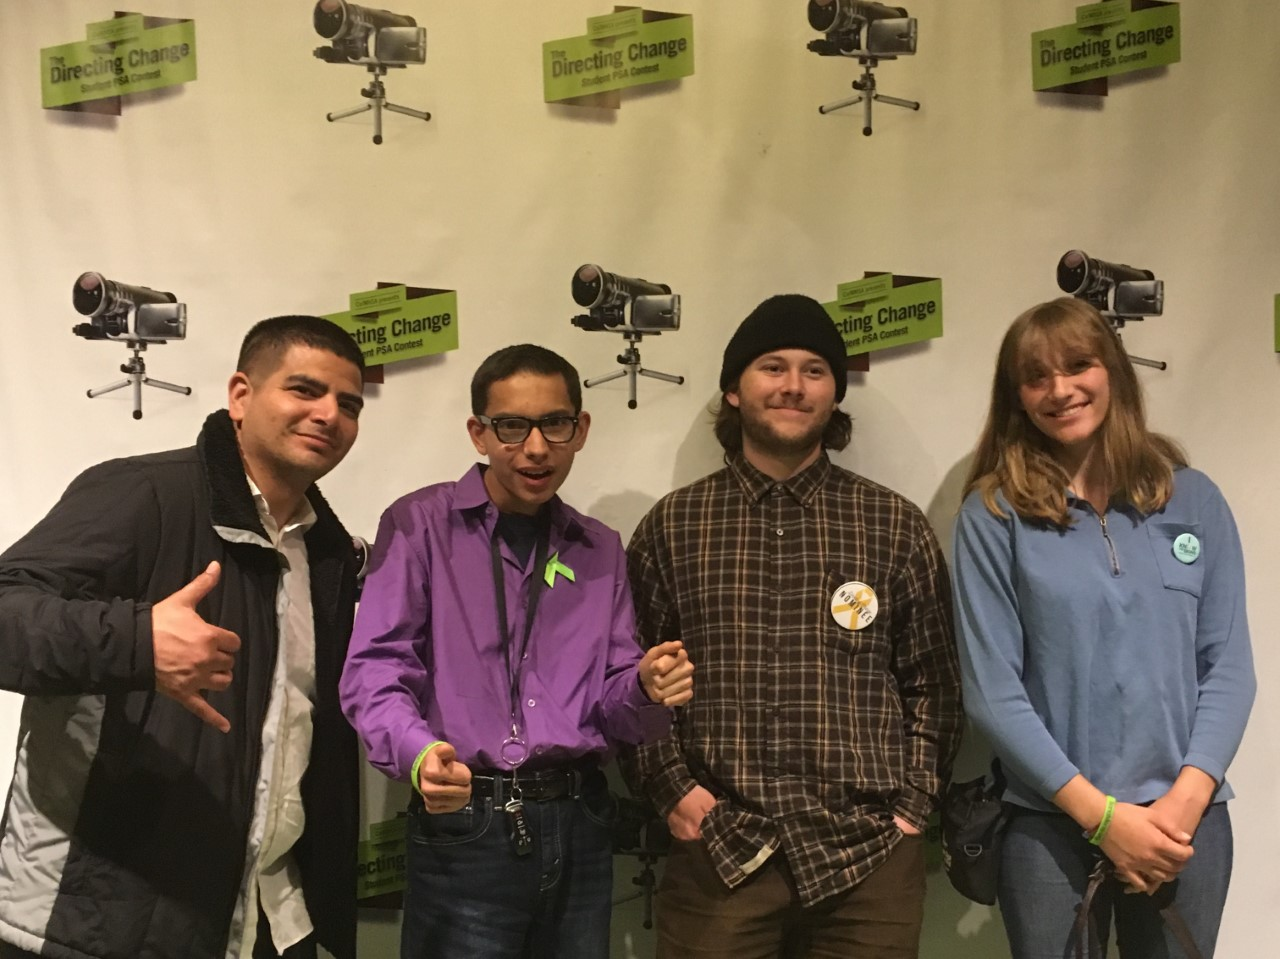 Digital Video Adviser, Brian Garcia, and students Aiden Deming, Jake Swartz, and Student Director, Shaiyanne Leeming pose at the California Performing Arts Theatre for the 6th Annual Inland Empire Screening & Award Ceremony of the Directing Change Film Contest.